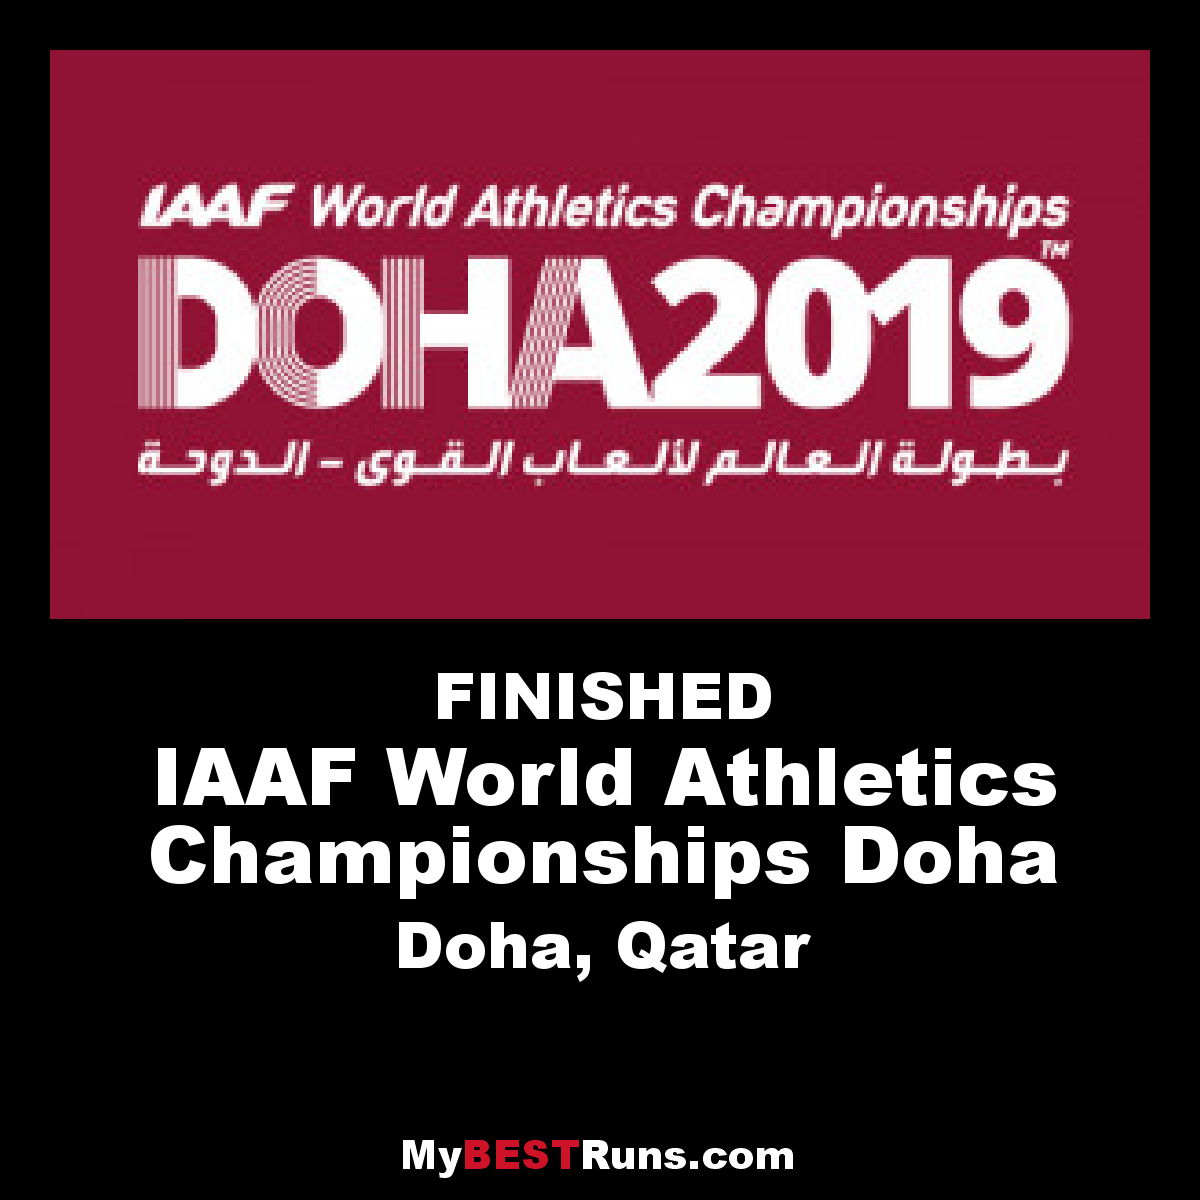 IAAF World Athletics Championships Doha